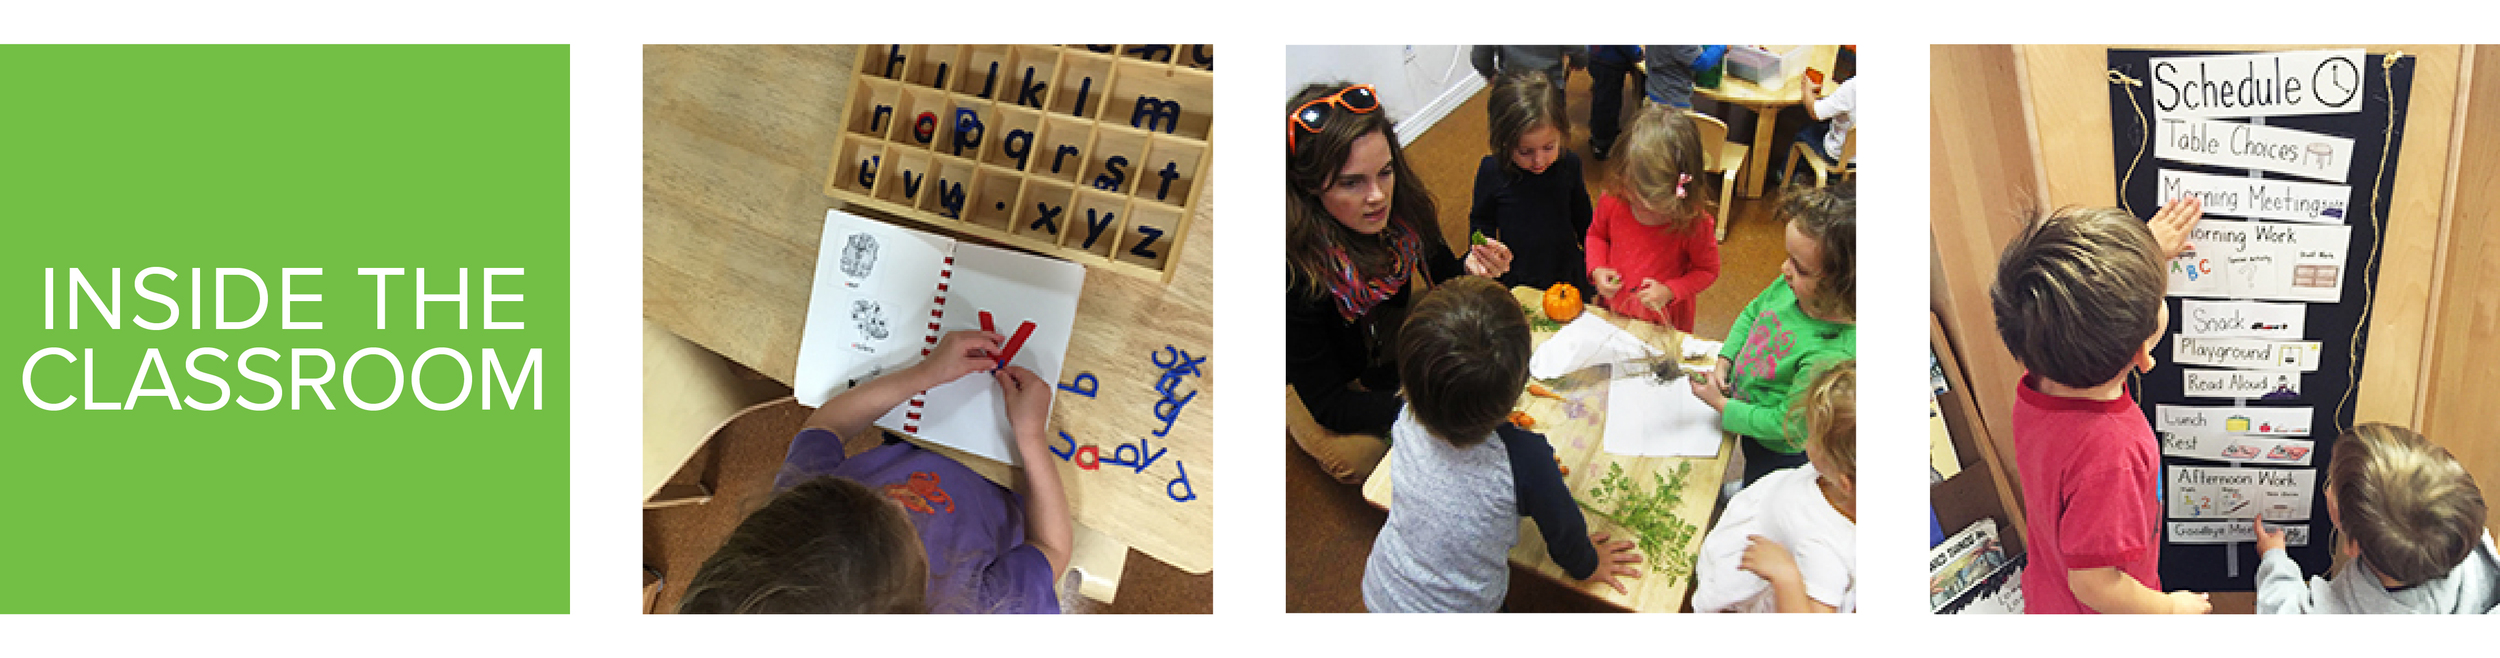 RED HOOK PLAYGROUP: INSIDE THE CLASSROOM